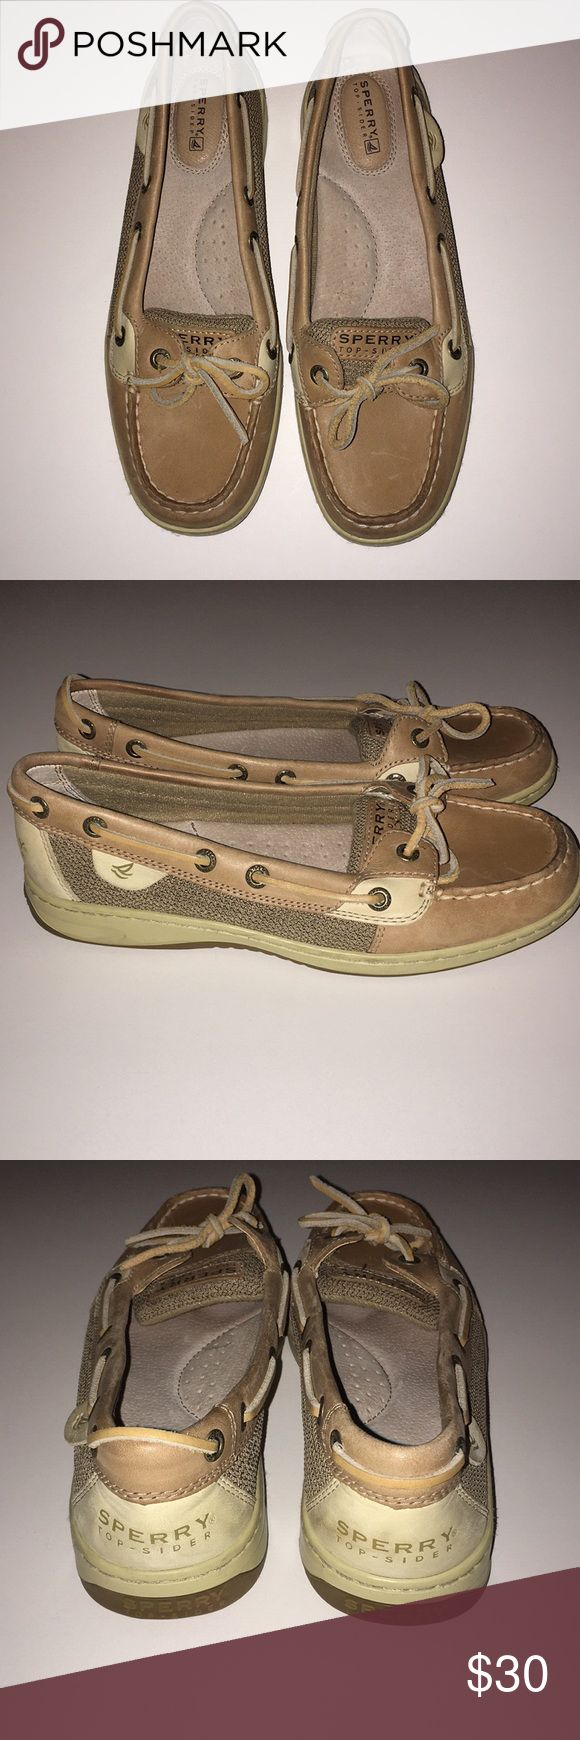 Sperry Womens Angelfish Boat Shoes Super comfy Sperry's boat shoes Worn twice- small scratches but barely noticable-still in good condition Sperry Shoes Flats & Loafers